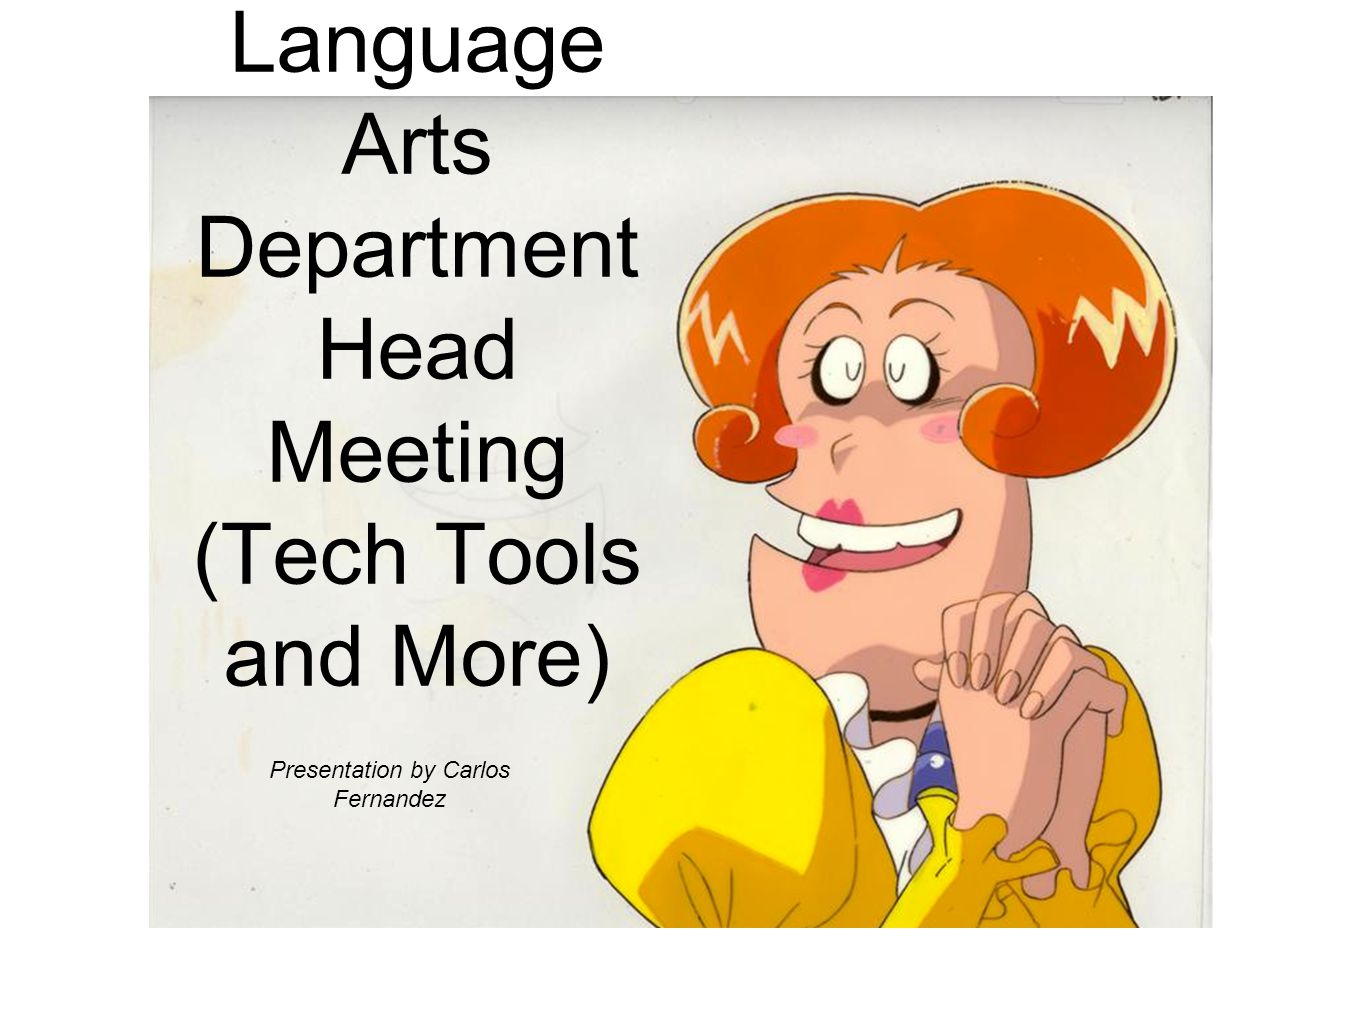 Language Arts Department Head Meeting (Tech Tools and More)